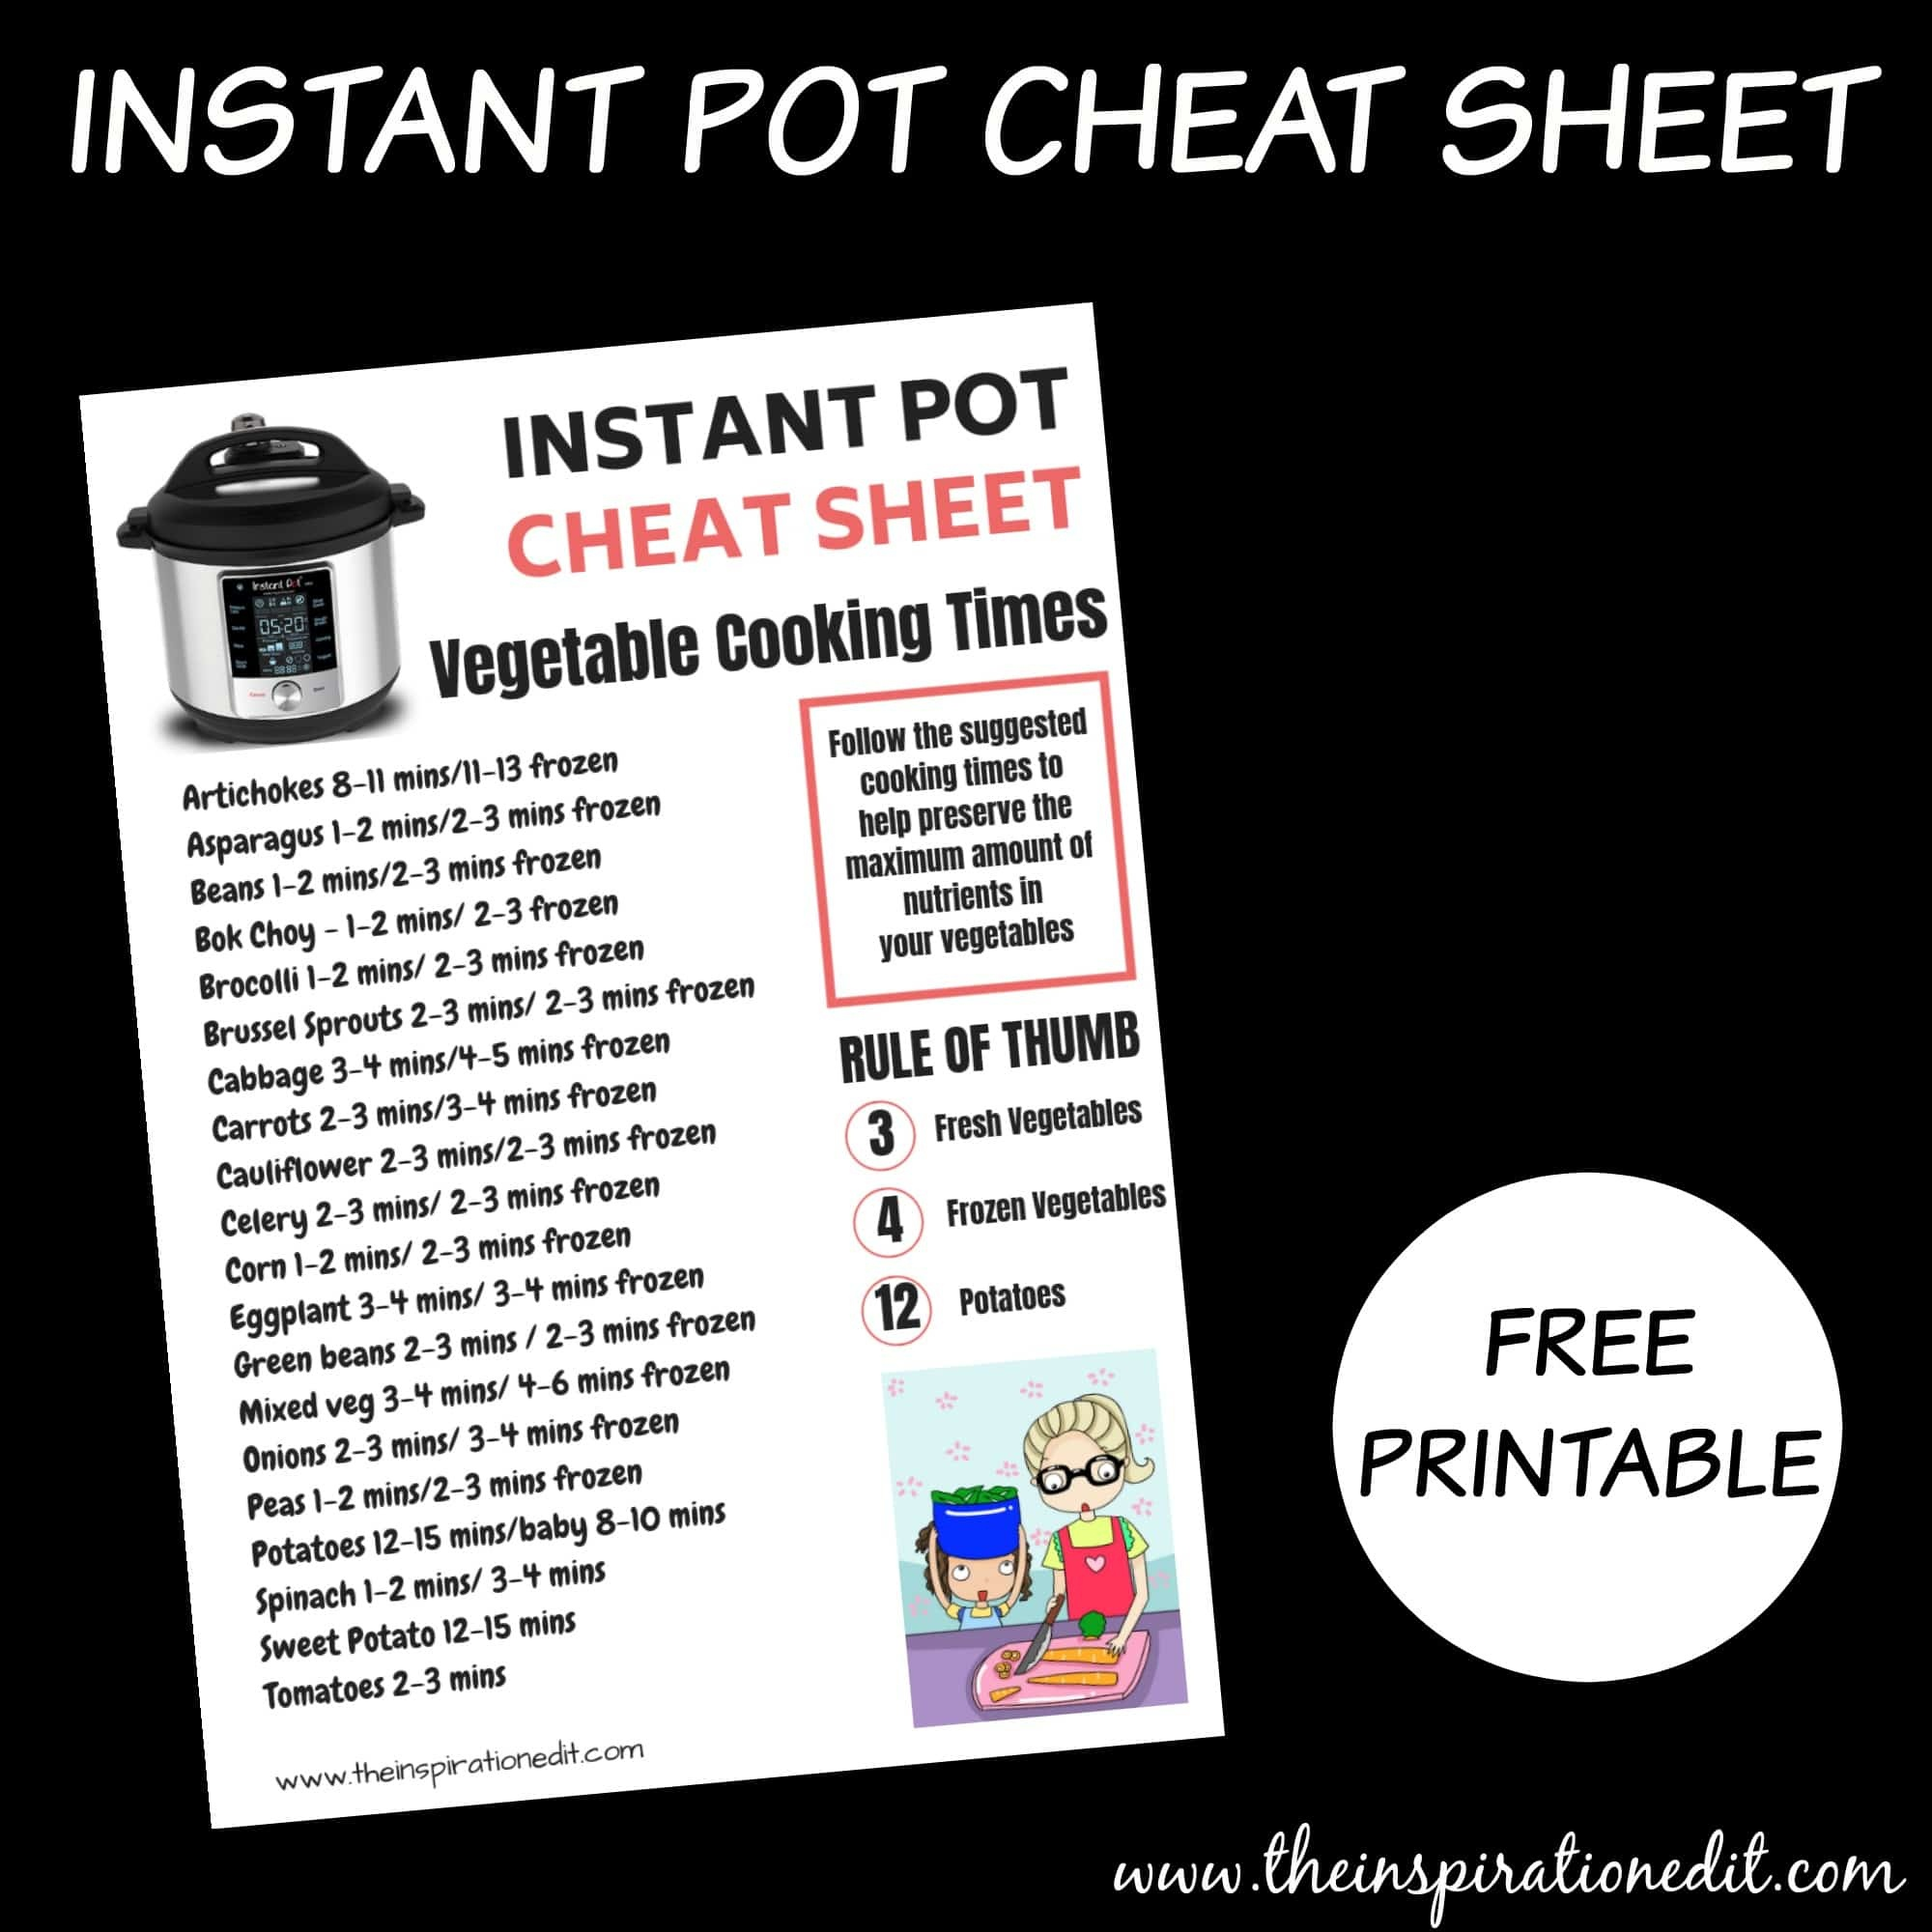 Free Instant Pot Cheat Sheet For Vegetables · The Inspiration Edit - Free Printable Instant Pot Cheat Sheet